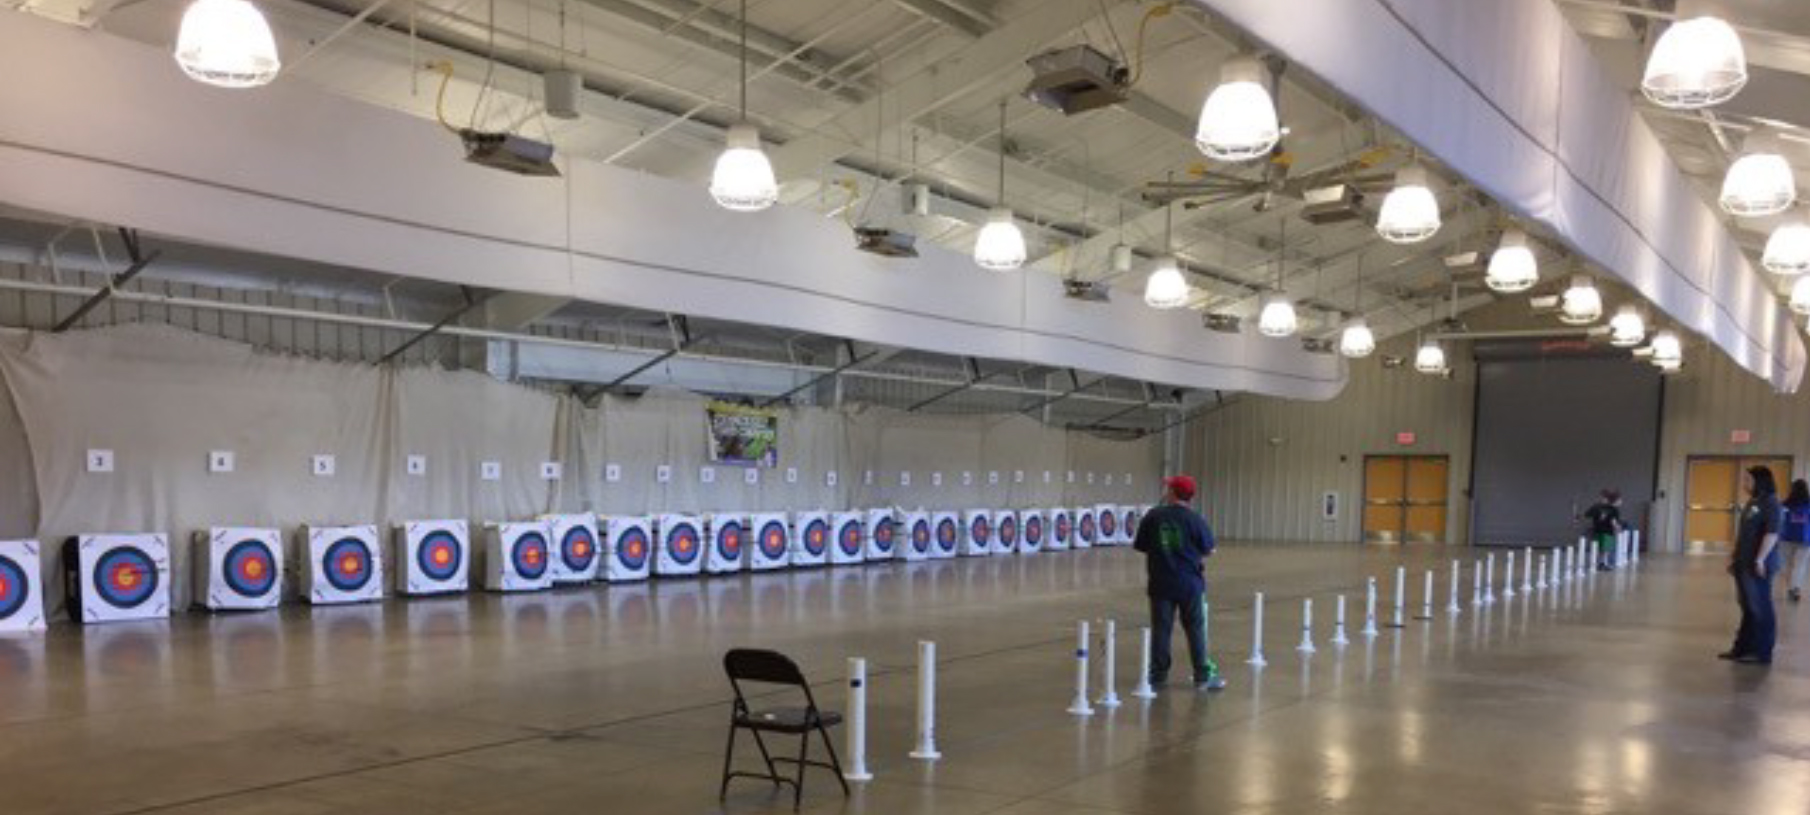 Shooting Sports - Archery